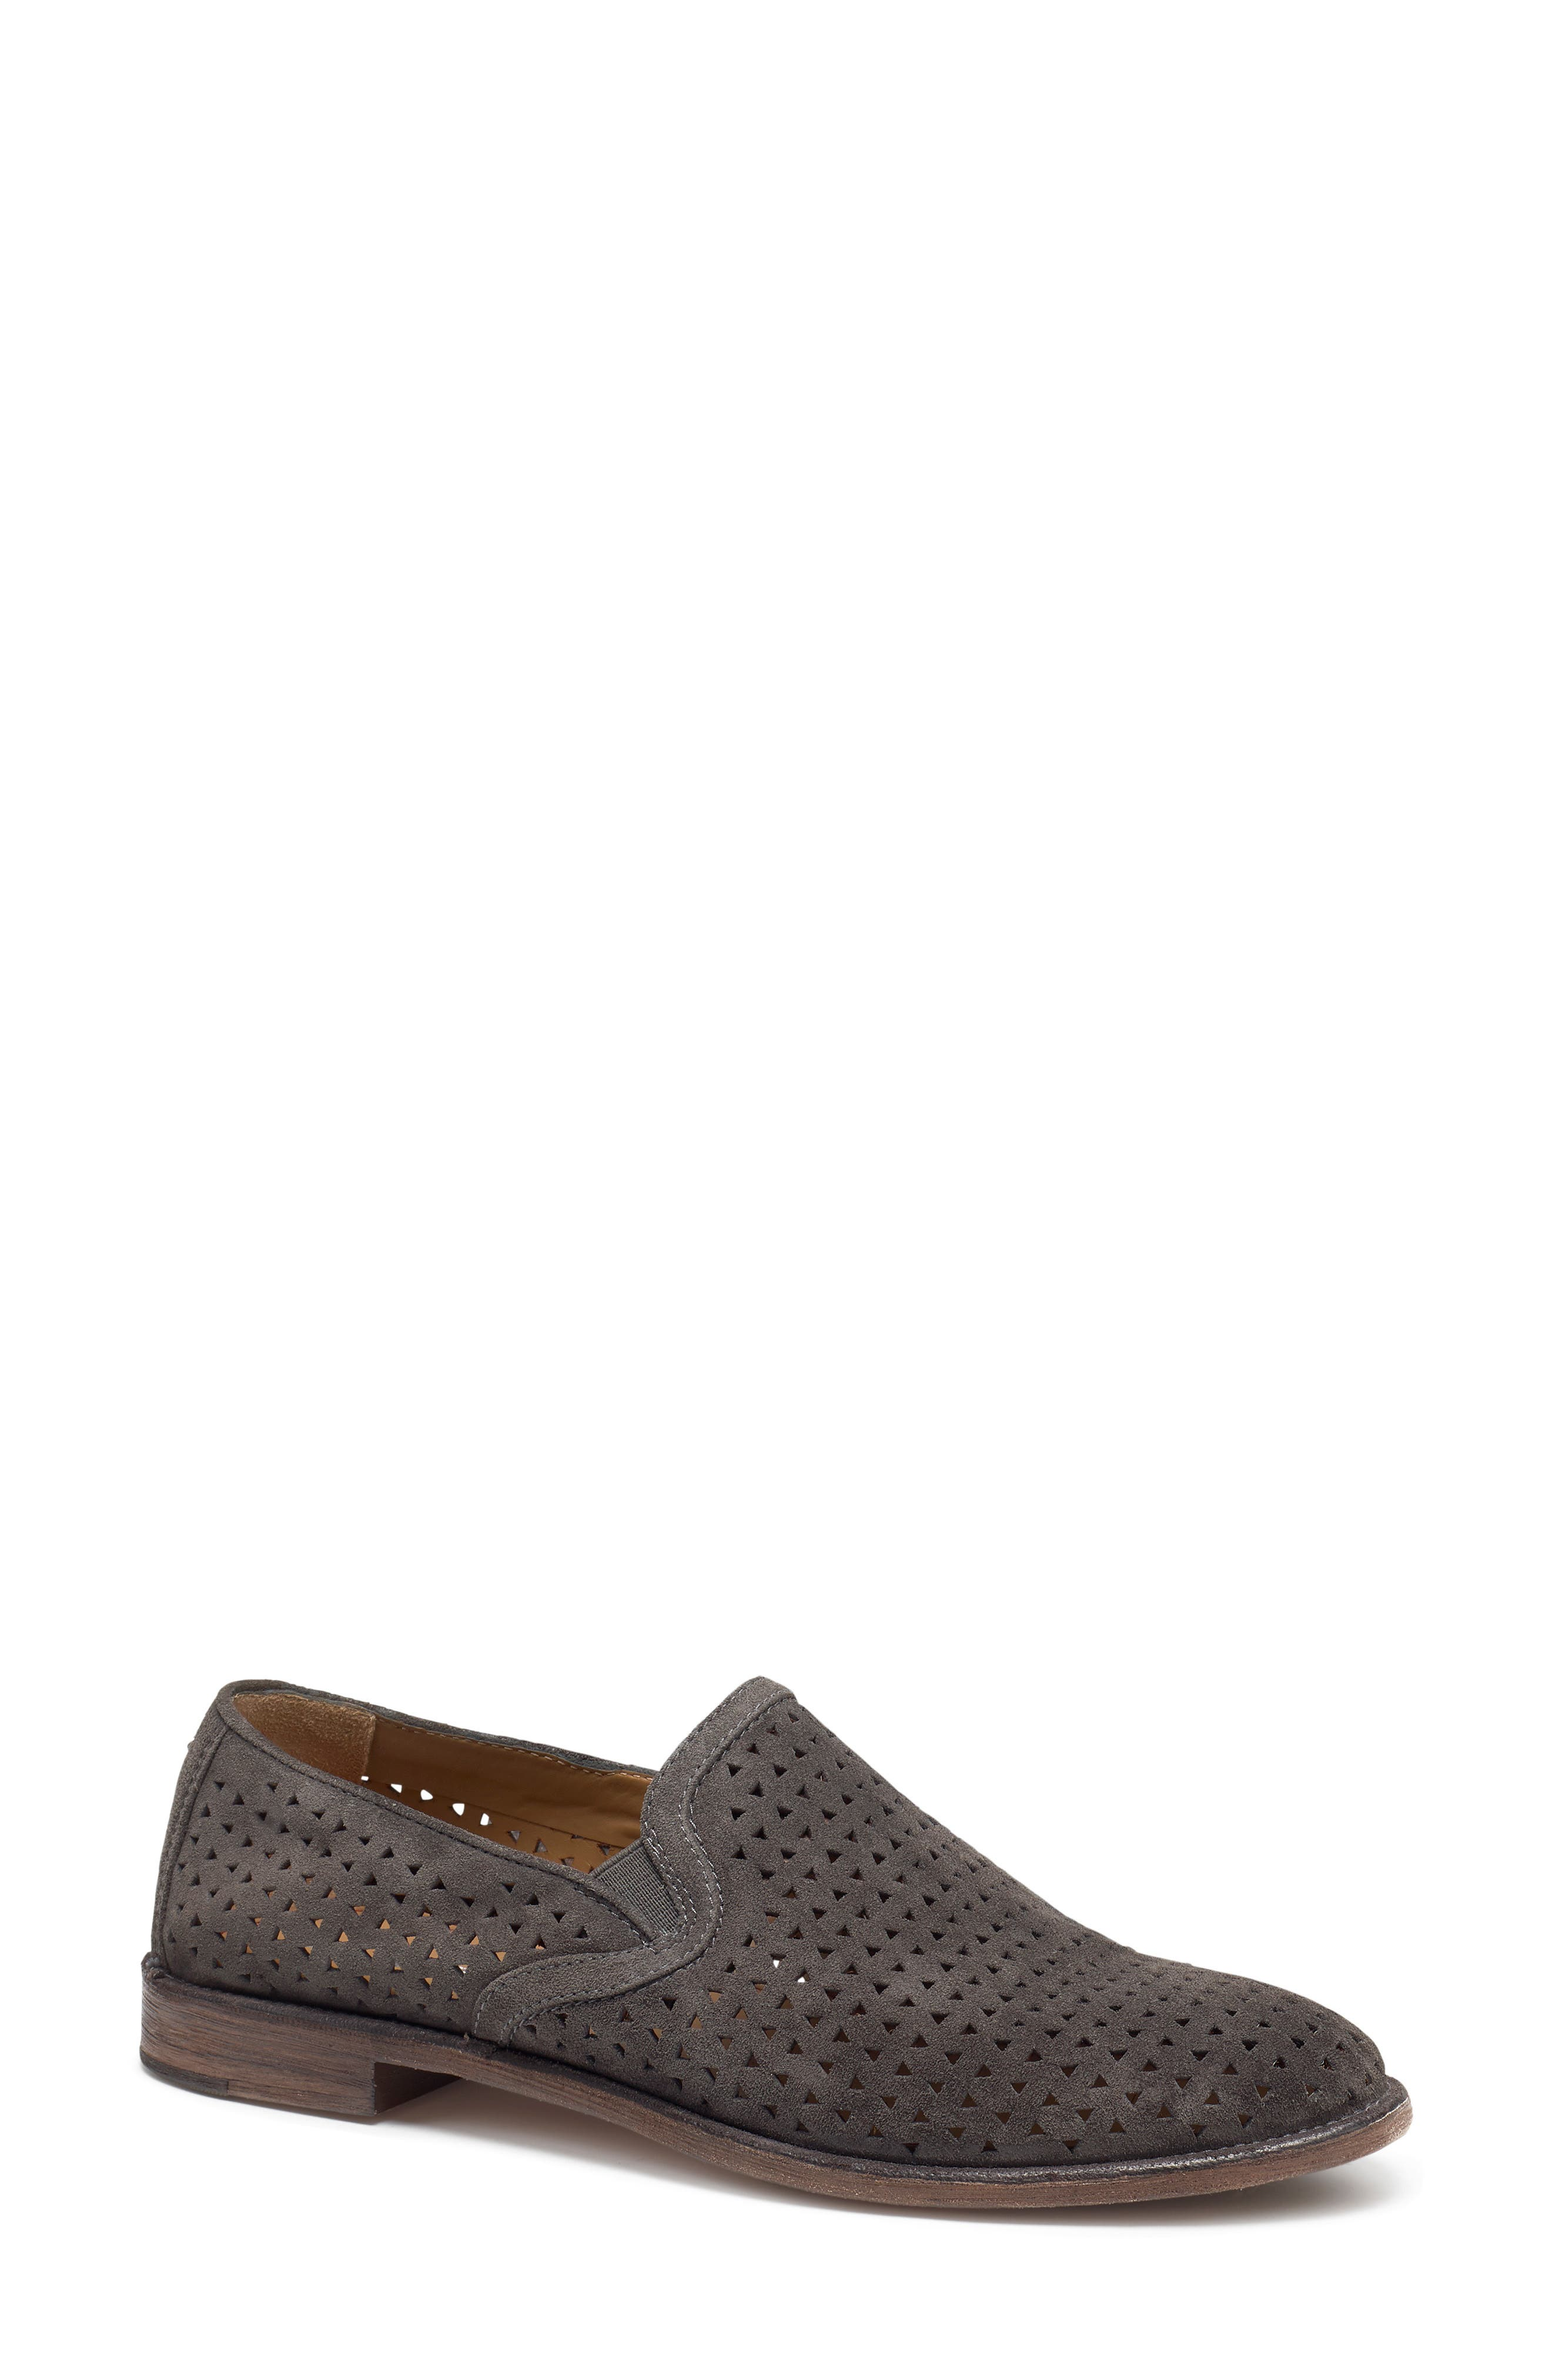 Ali Perforated Loafer,                         Main,                         color, GREY SUEDE